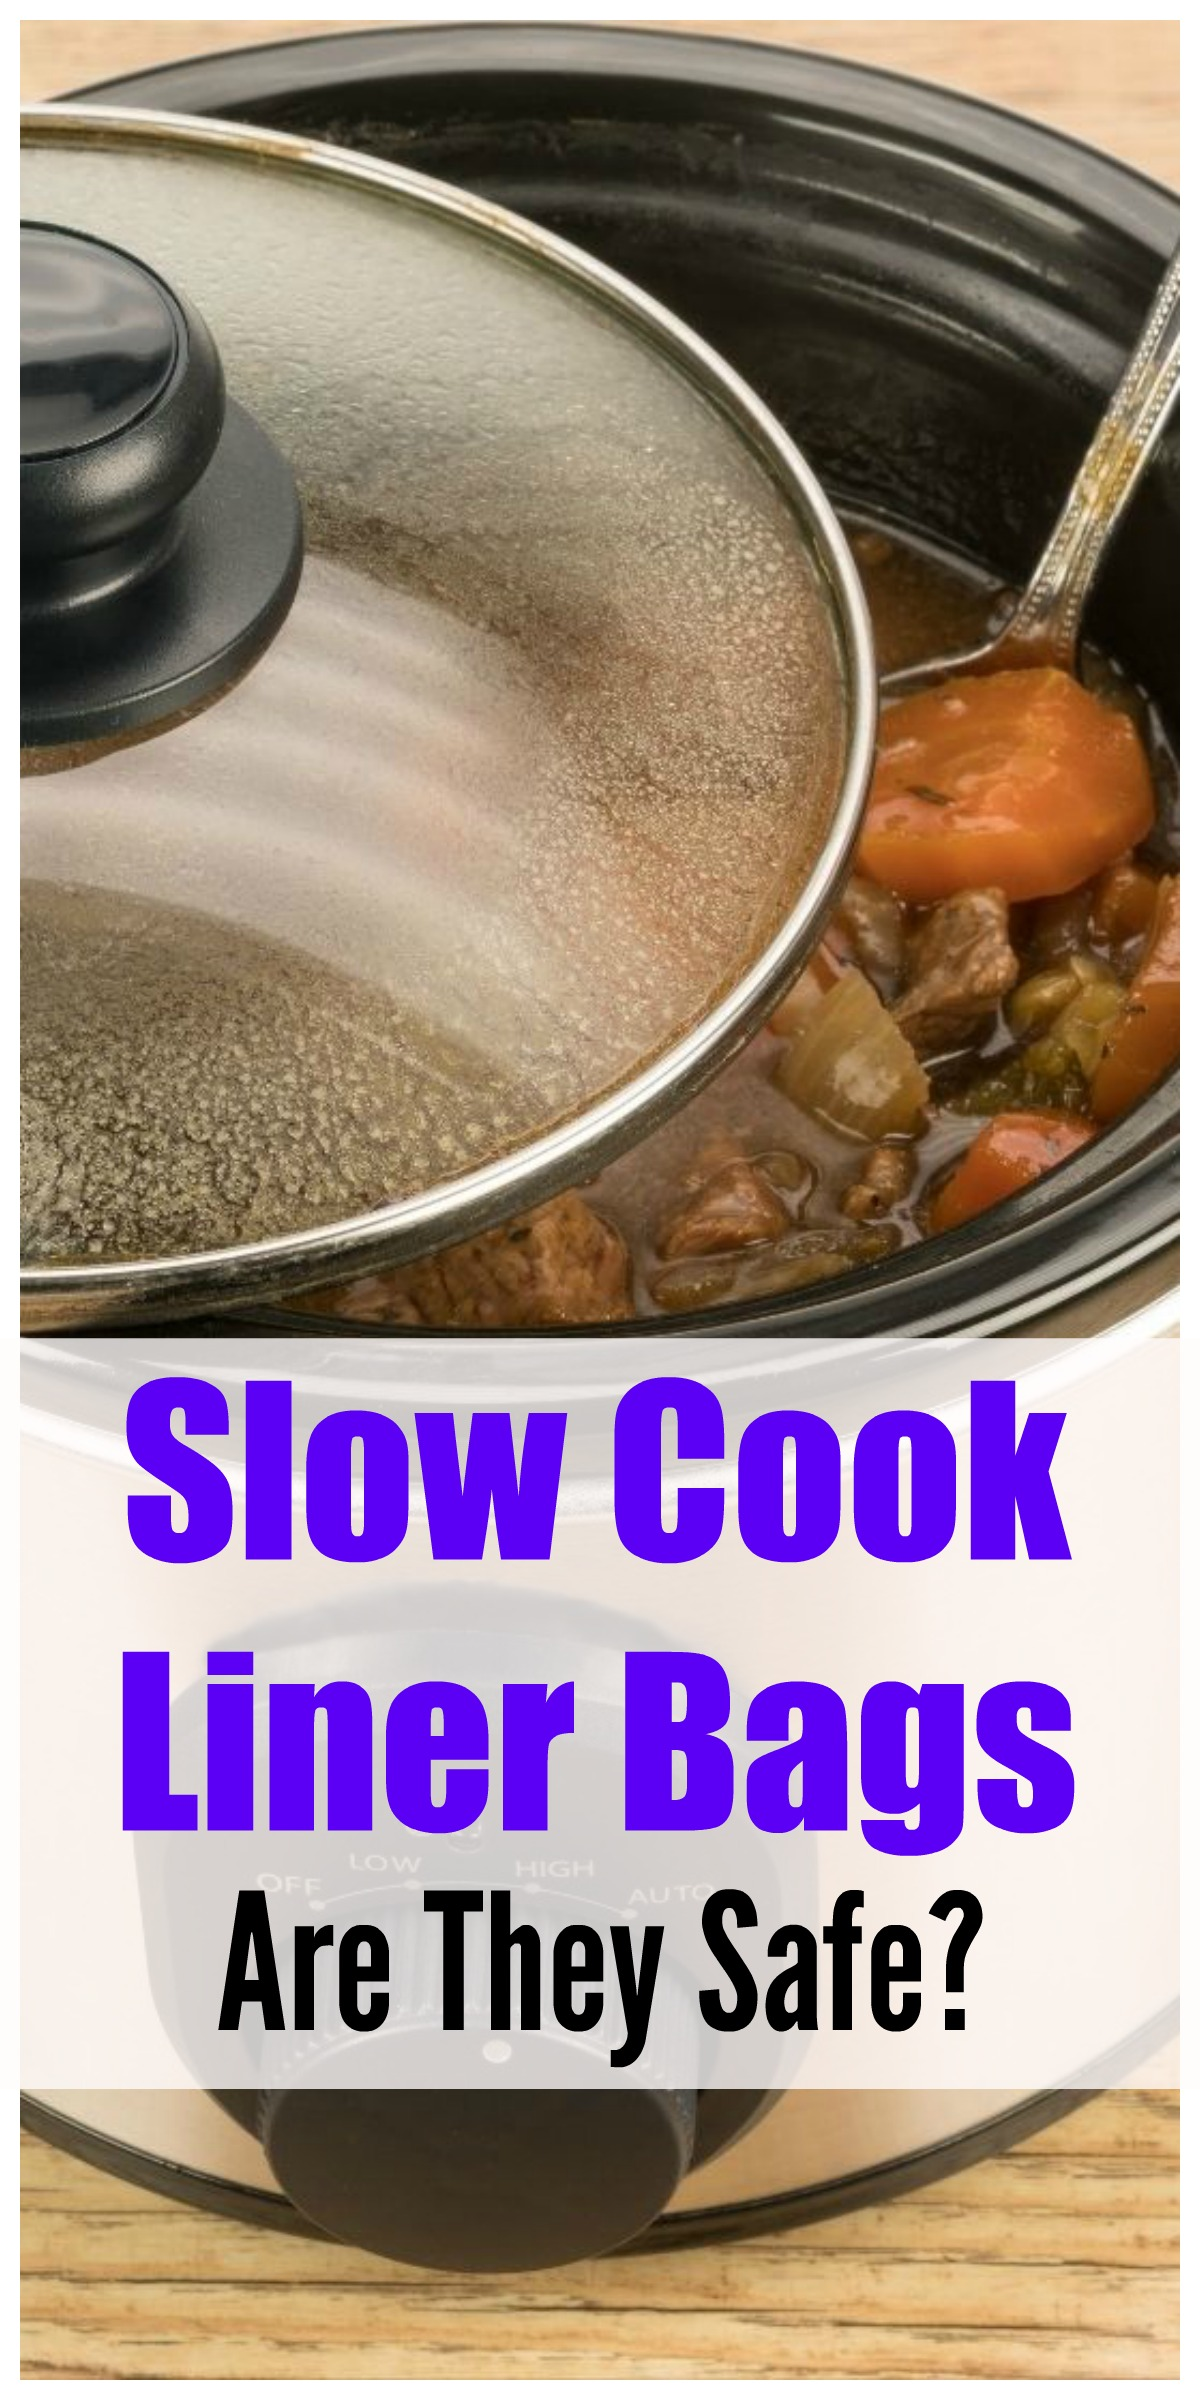 Are slow cook liner bags safe